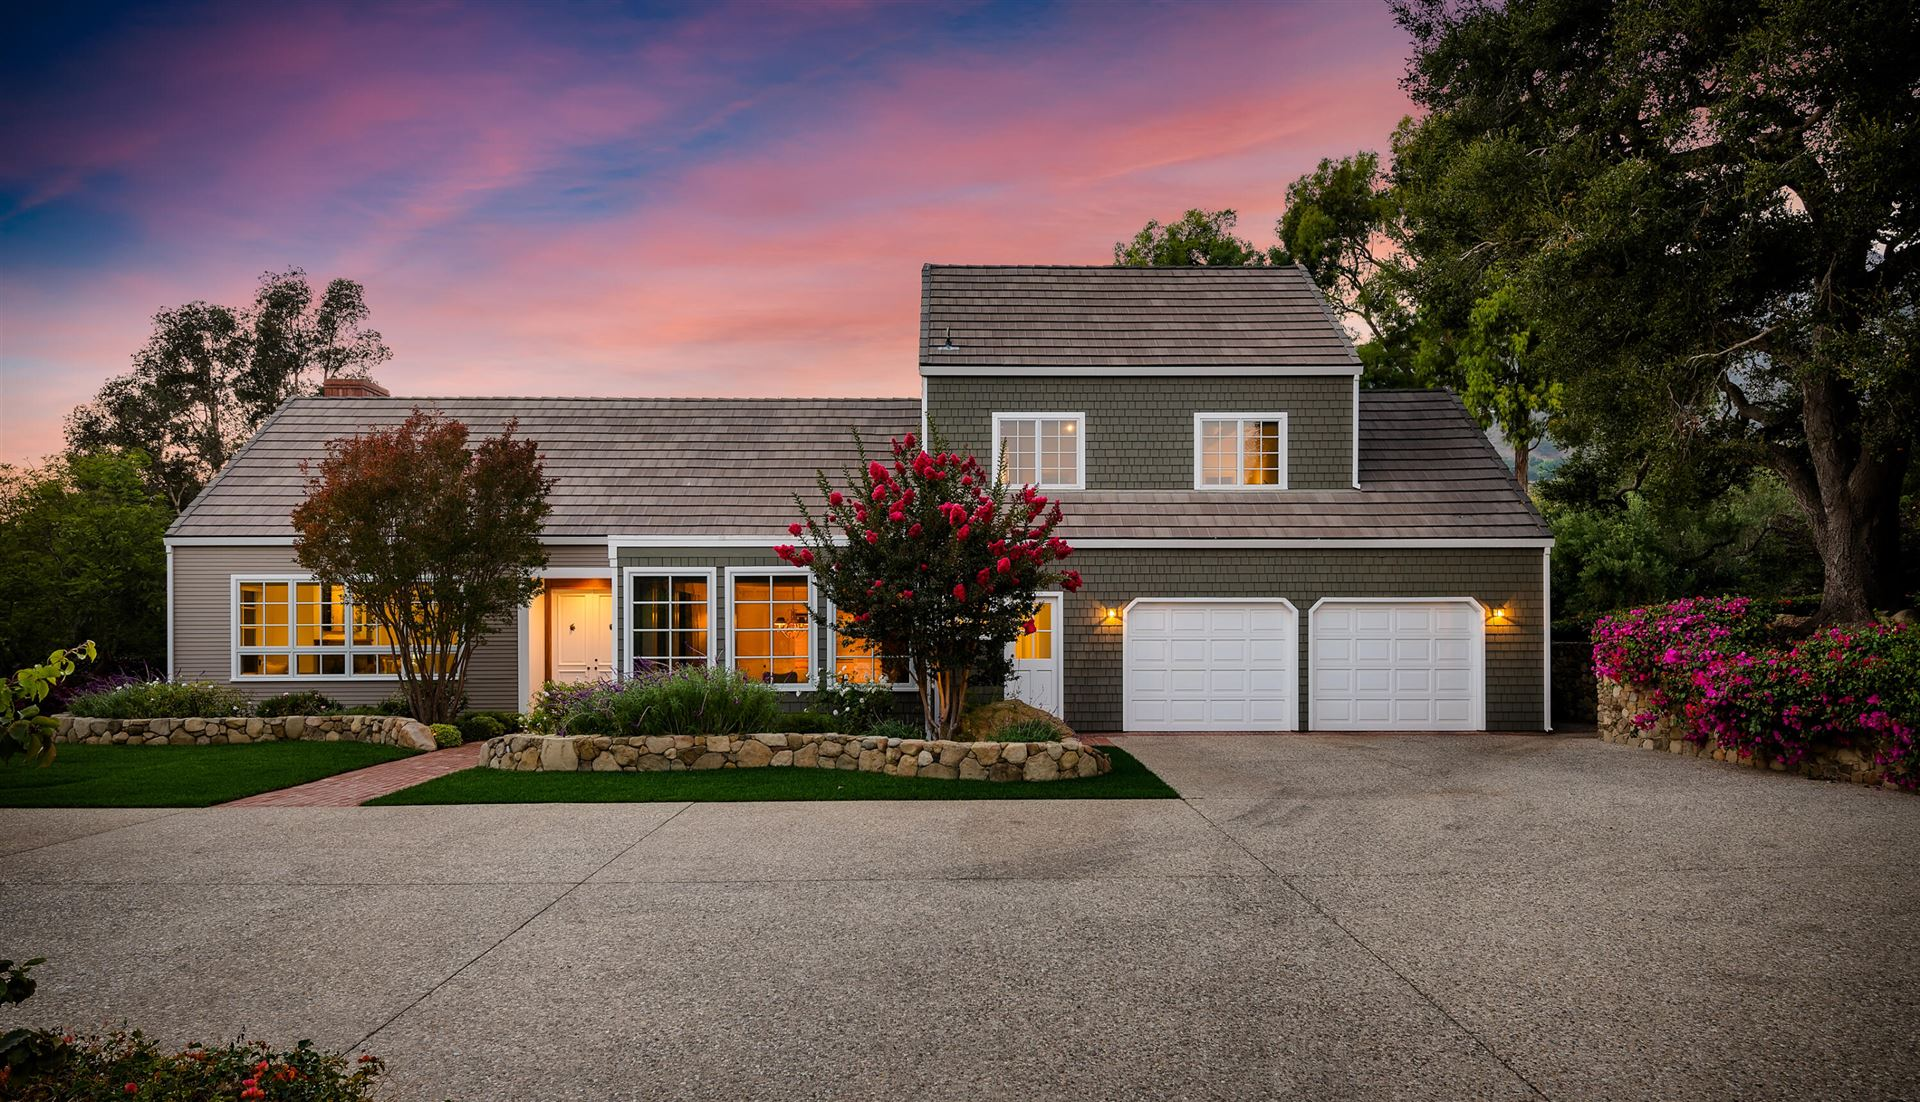 2297 Feather Hill Rd, Montecito, CA 93108 - MLS#: 21-3267